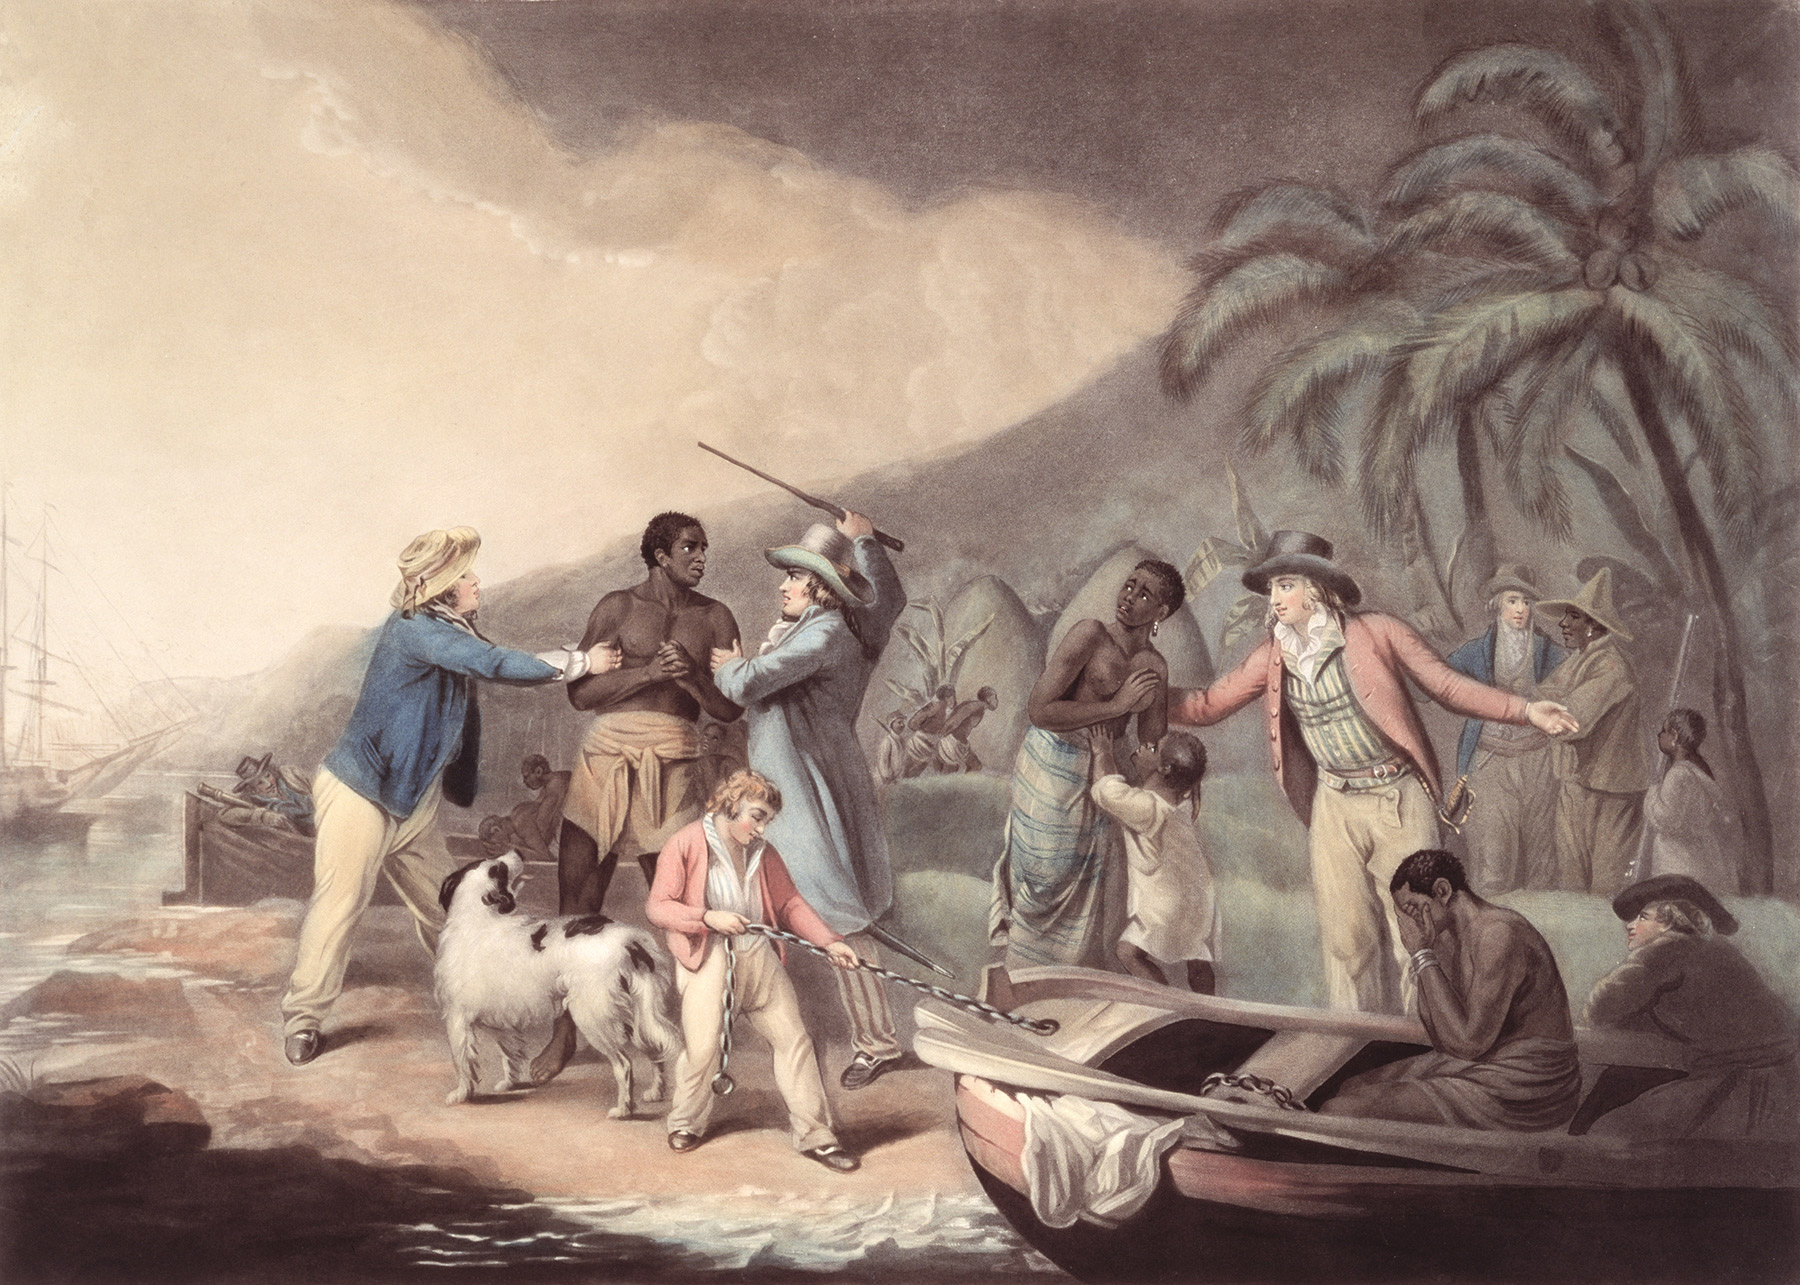 The Slave Trade, an engraving by J.R. Smith, late 18th century.